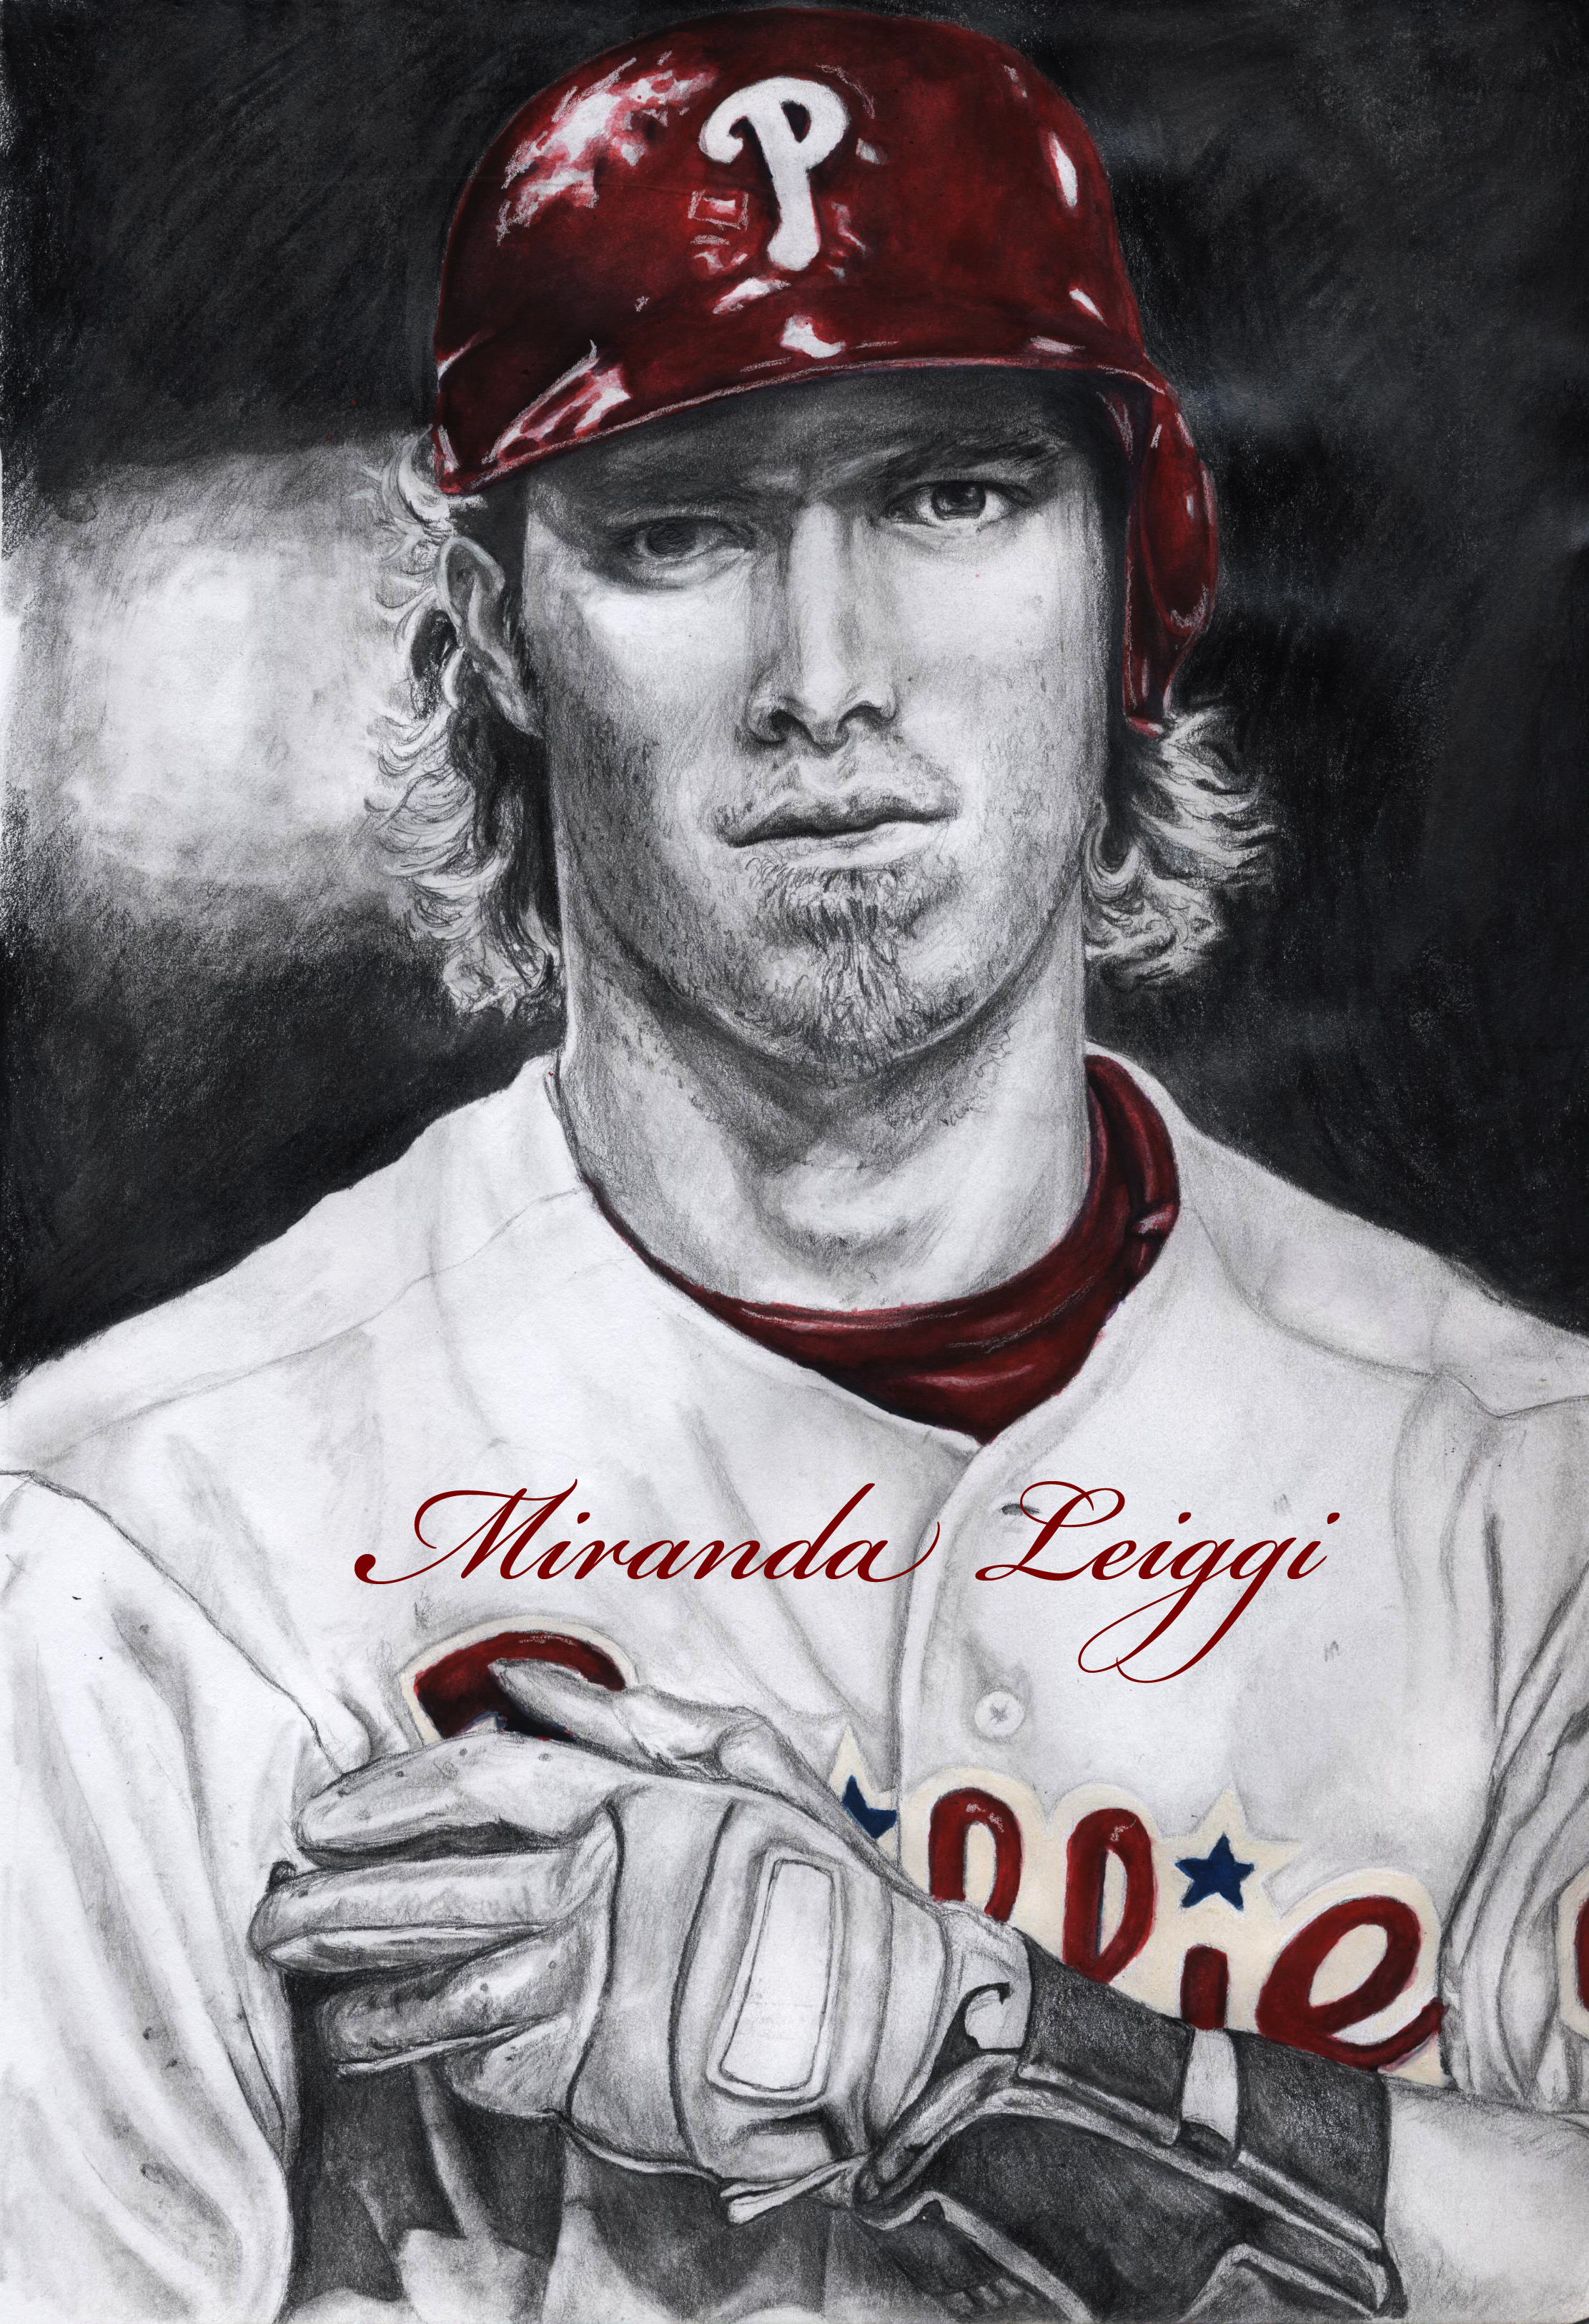 Philadelphia Phillies, portrait, baseball player, baseball, black and white, red